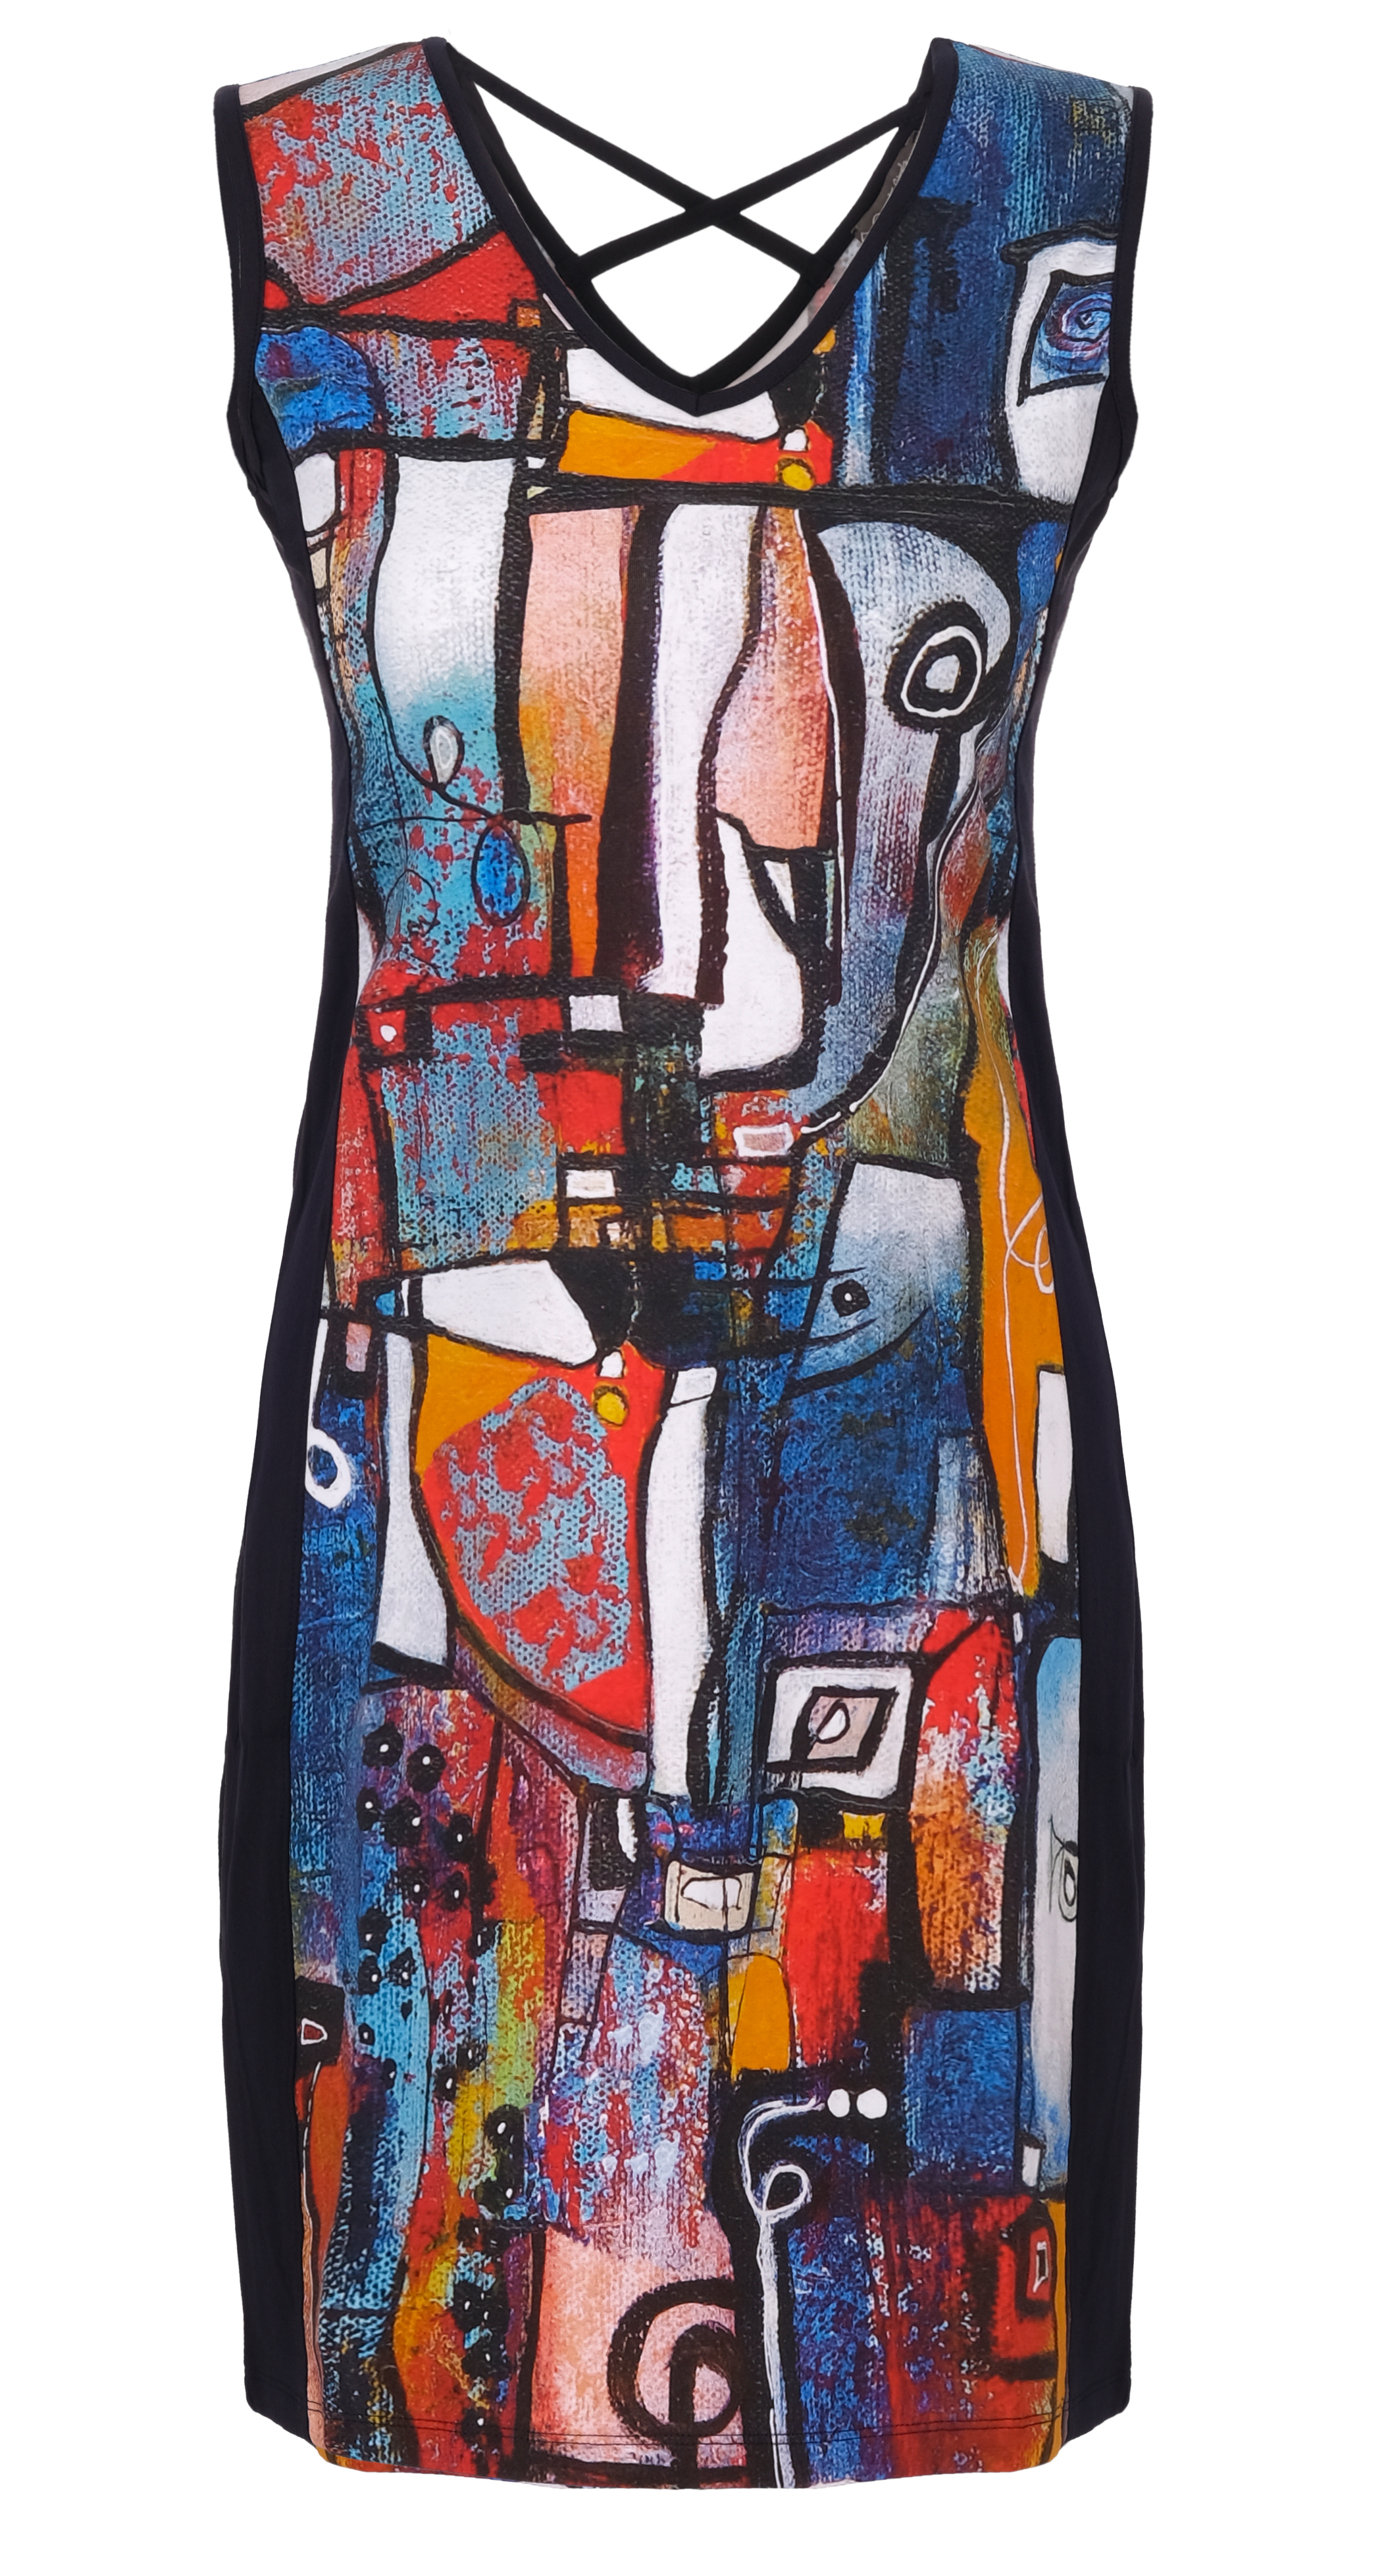 Simply Art Dolcezza: It's Complicated Crazy Cool Contrast Art Dress/Tunic (1 Left!) Dolcezza_SimplyArt_21715